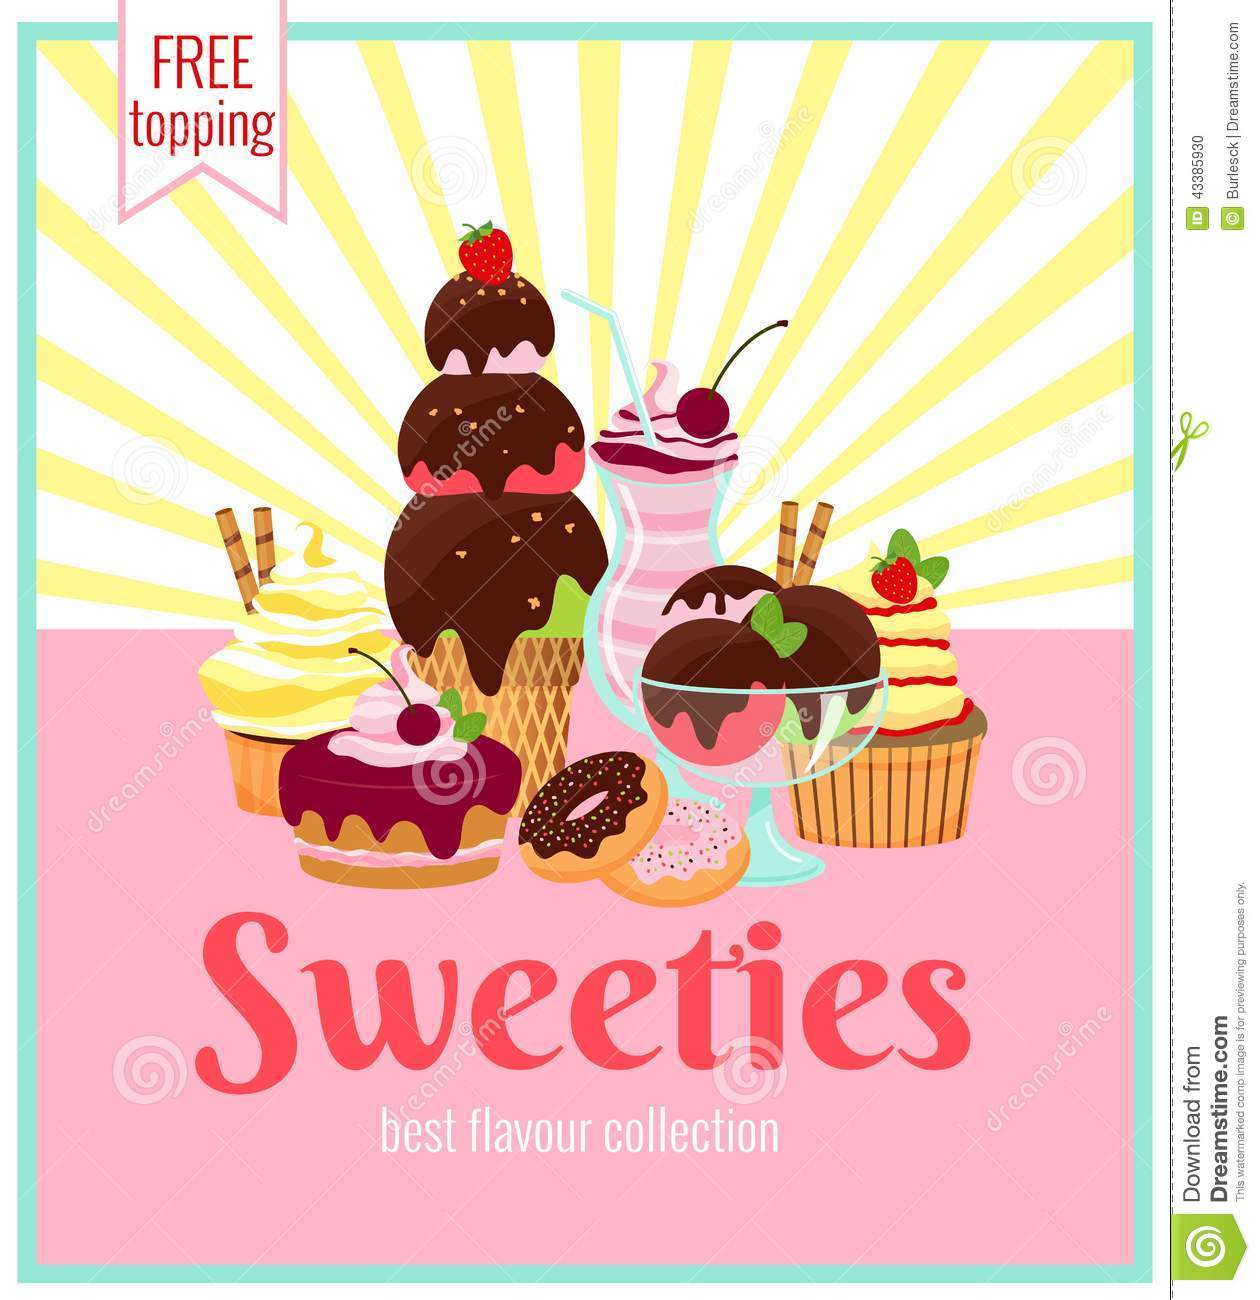 sweeties retro poster design stock vector